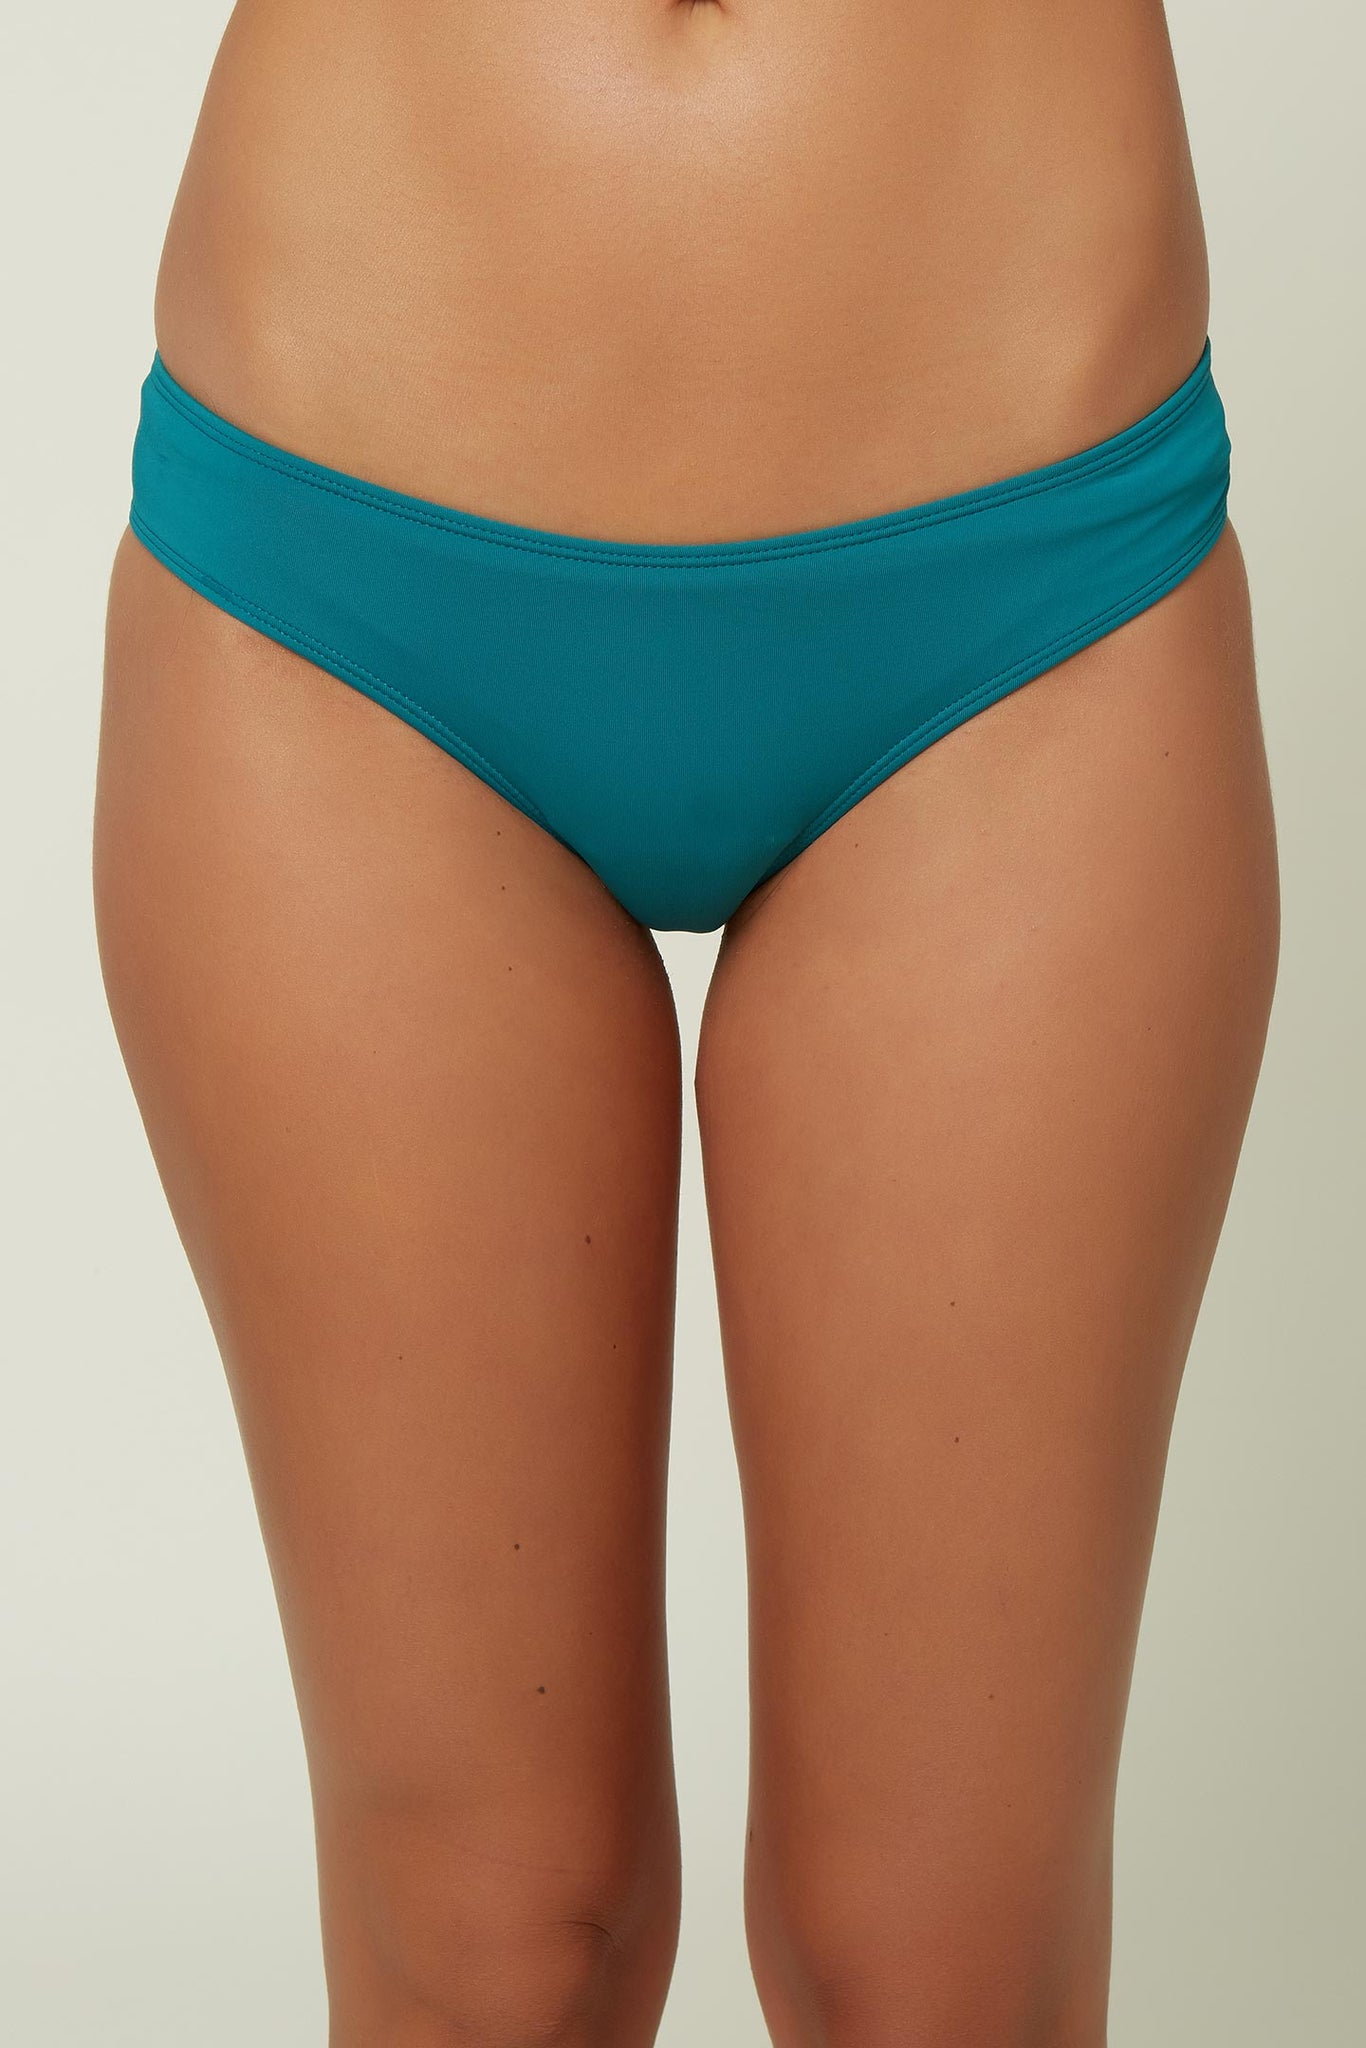 Saltwater Solids Cheeky Hipster Bottom - Teal Green | O'Neill